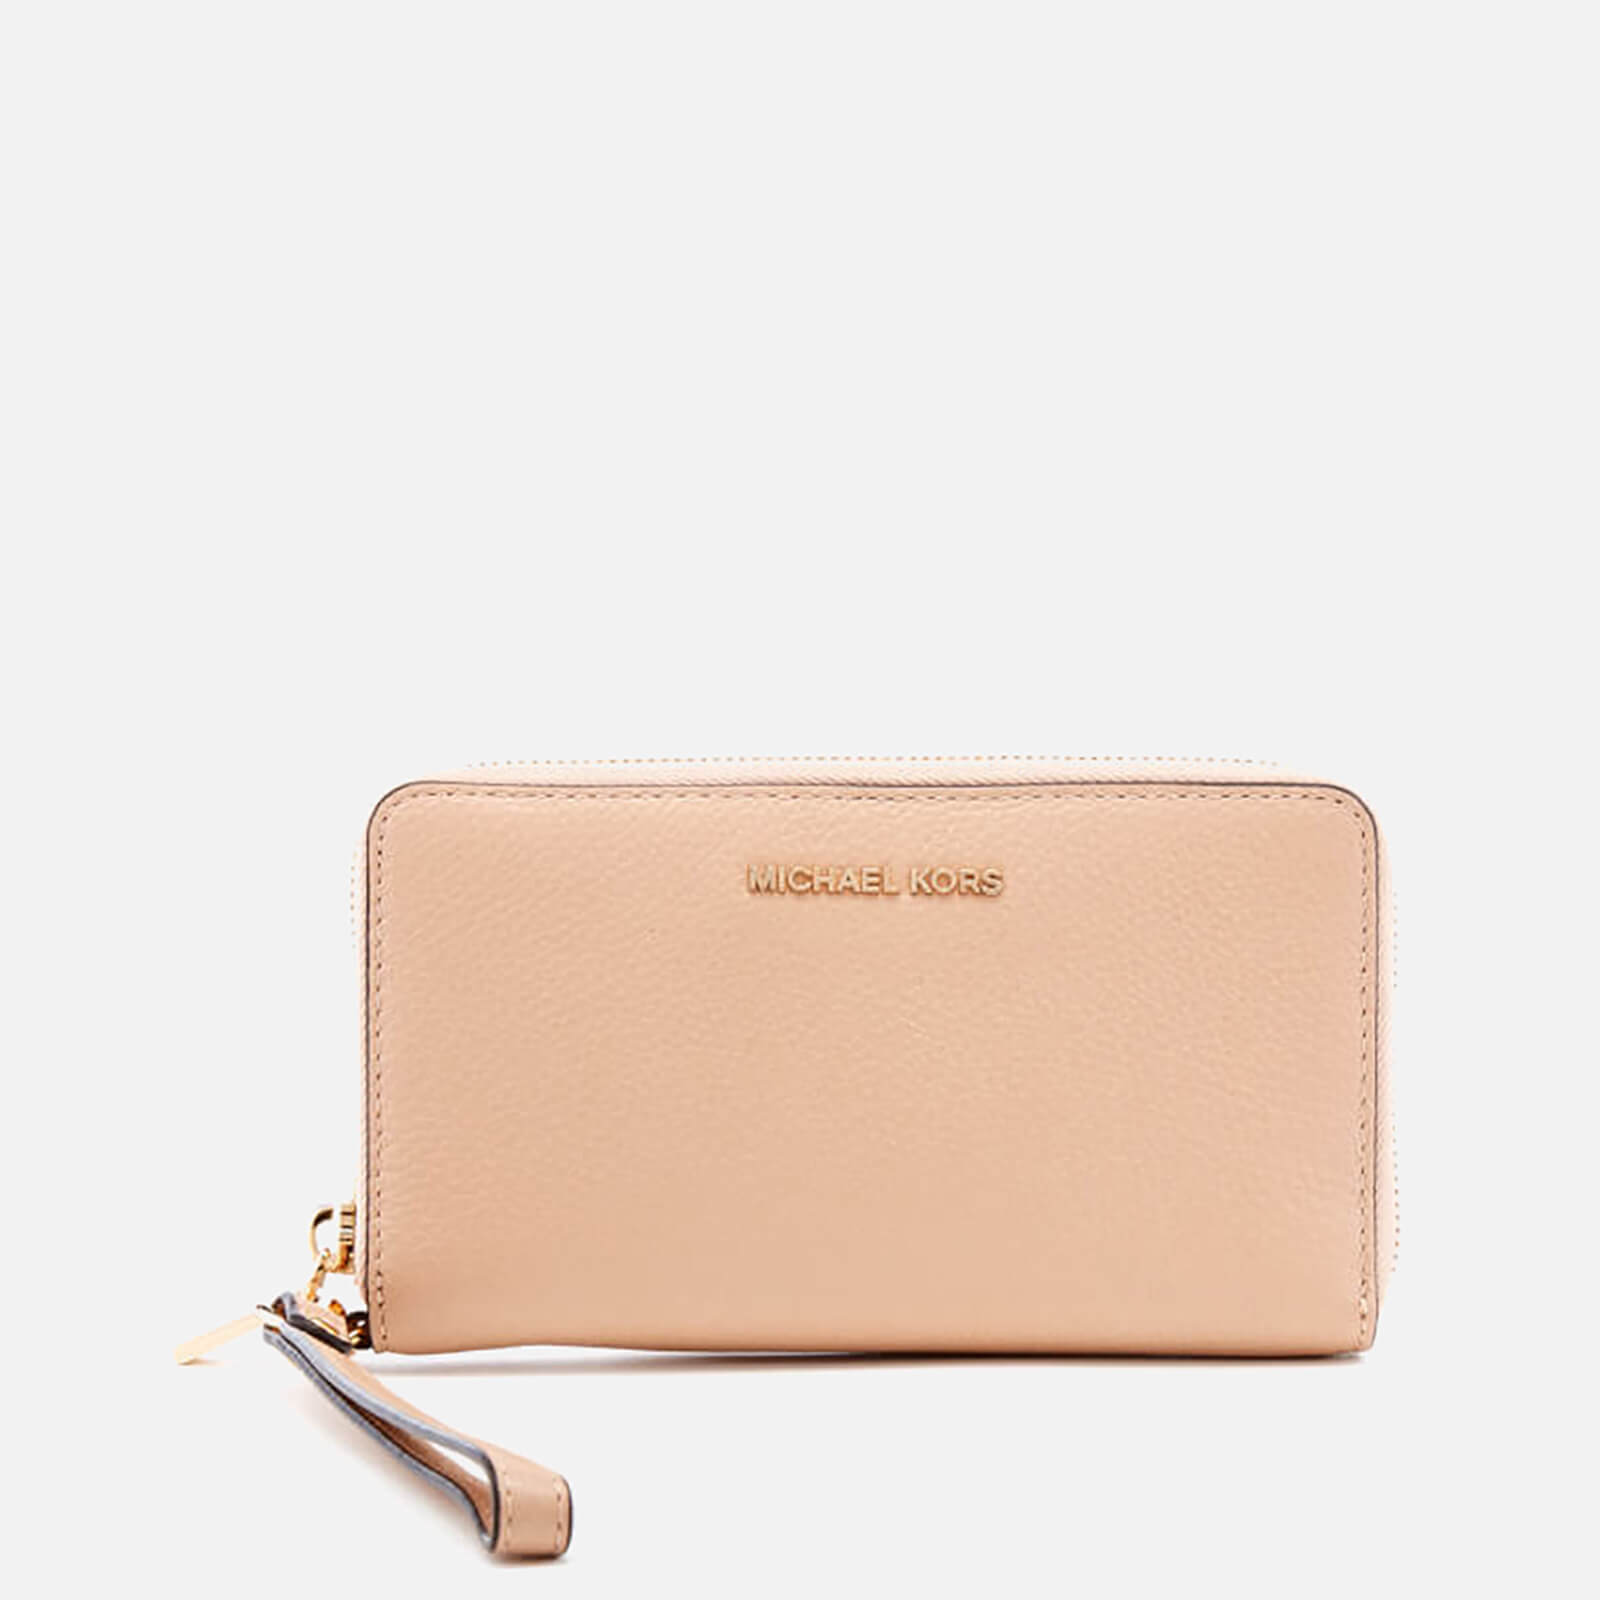 e671d922282a13 MICHAEL MICHAEL KORS Women's Mercer Large Flat Multifunction Phone Purse -  Oyster - Free UK Delivery over £50